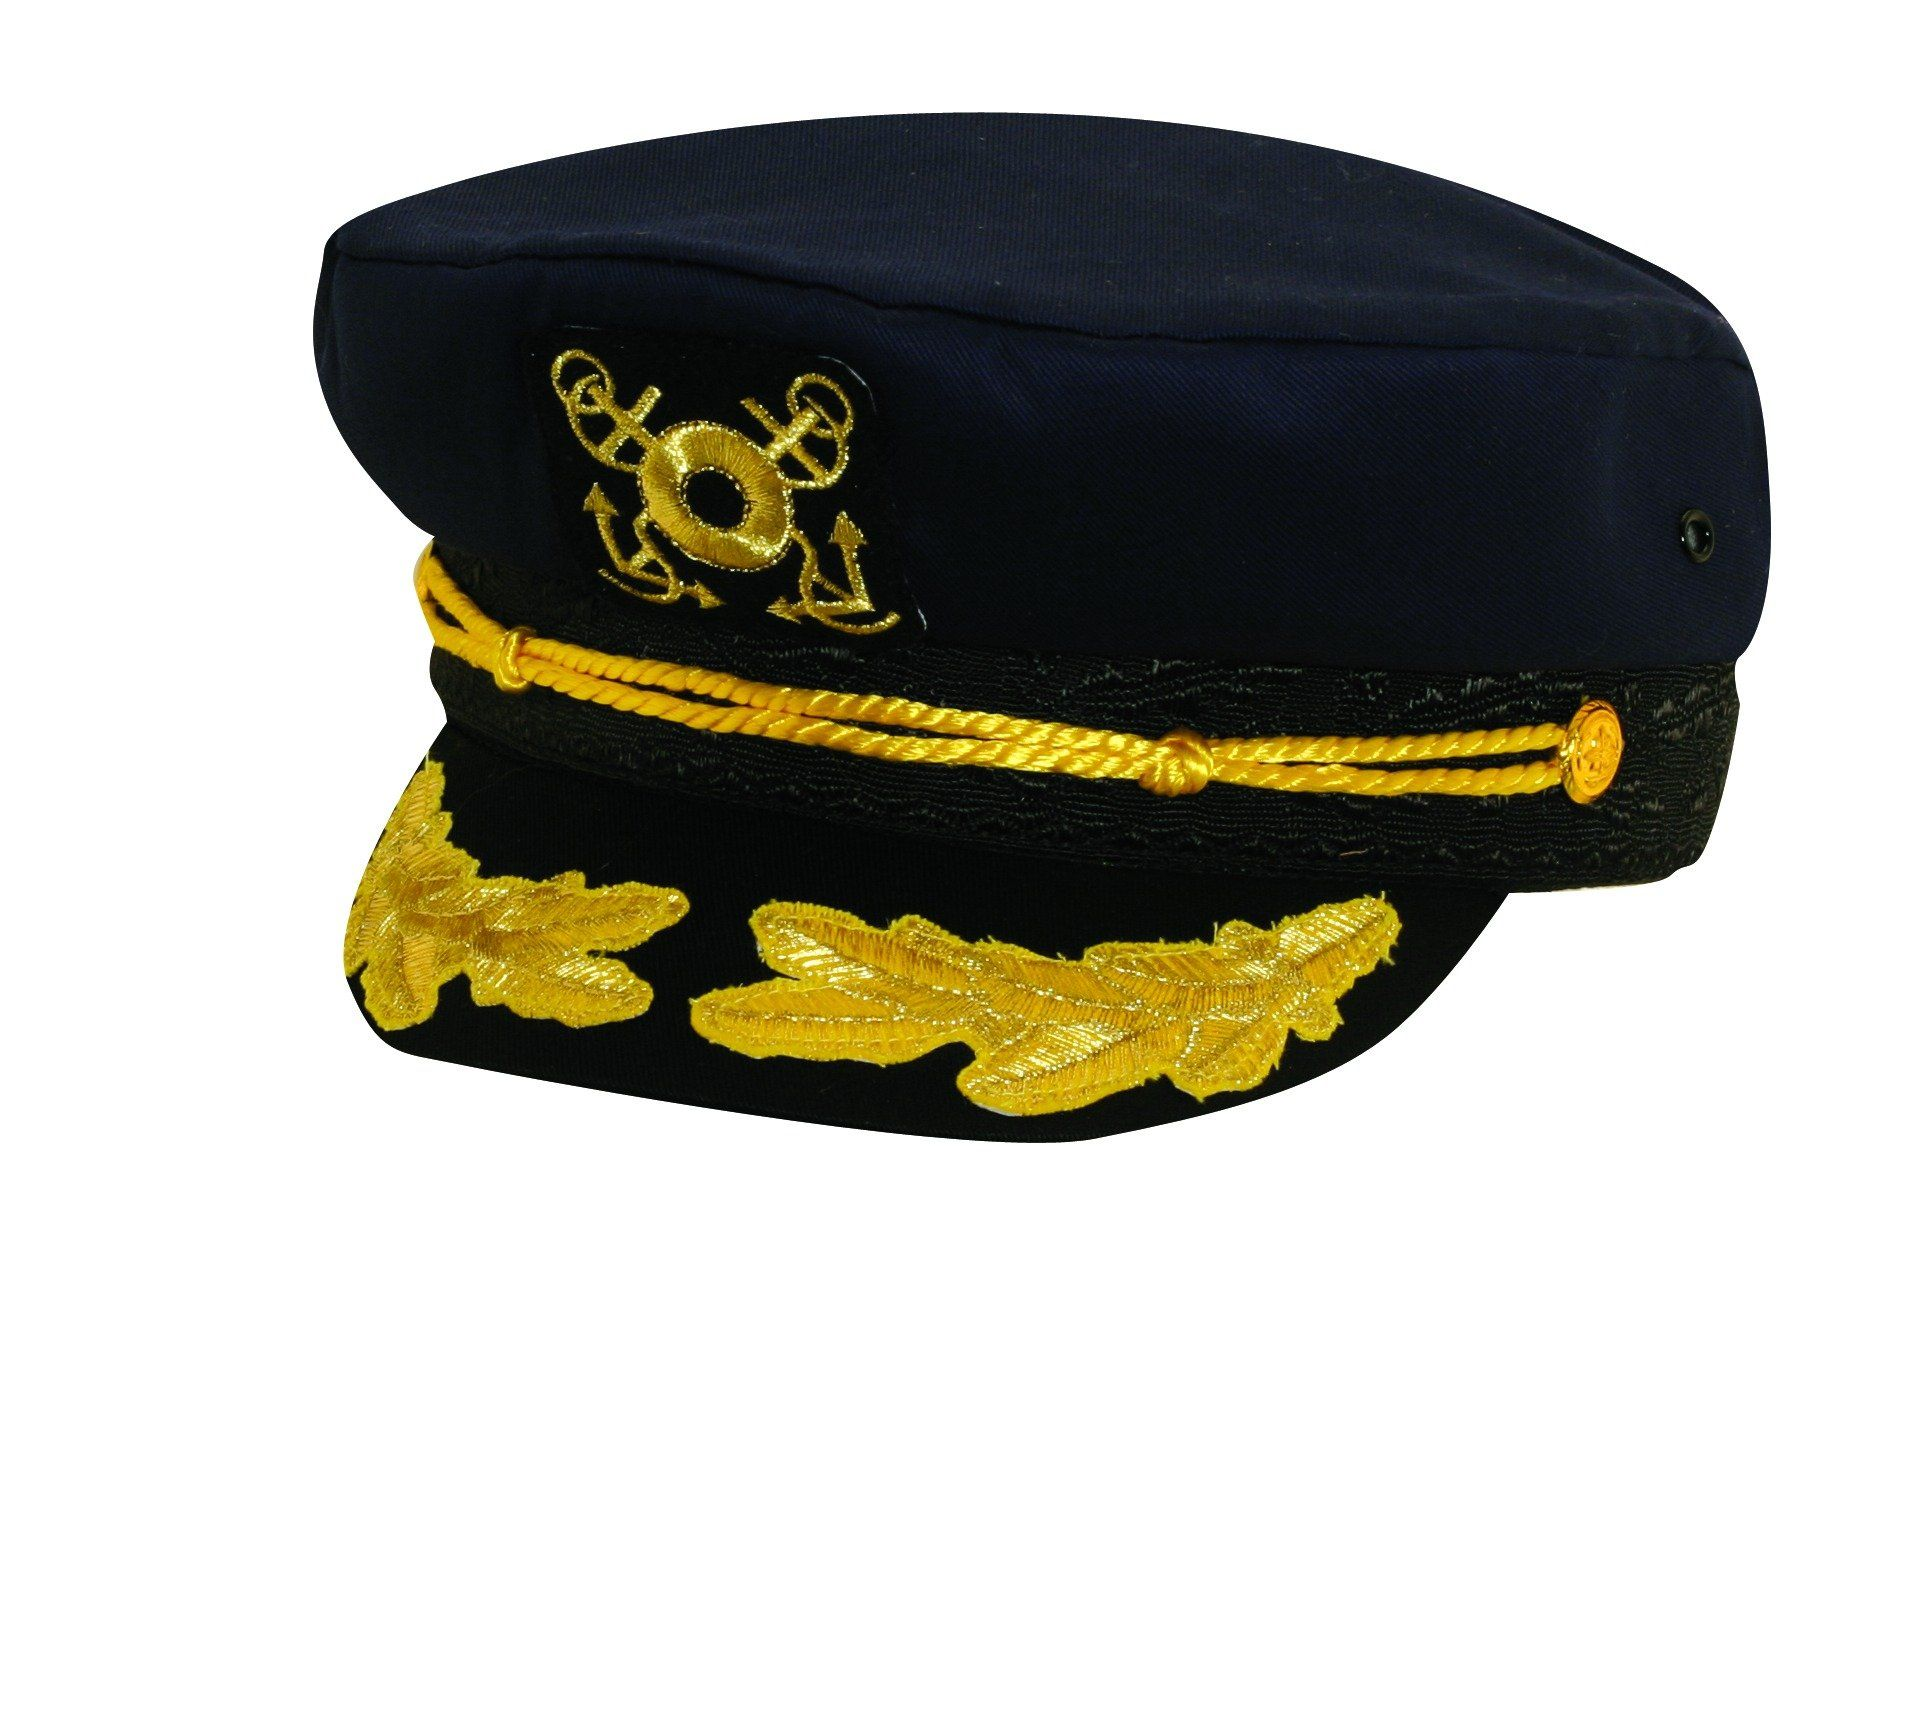 AEGEAN WOOL CAPTAIN S HAT – 2 COLOR CHOICES - Same Day Shipping - AEGE 35a8a79a3e6f